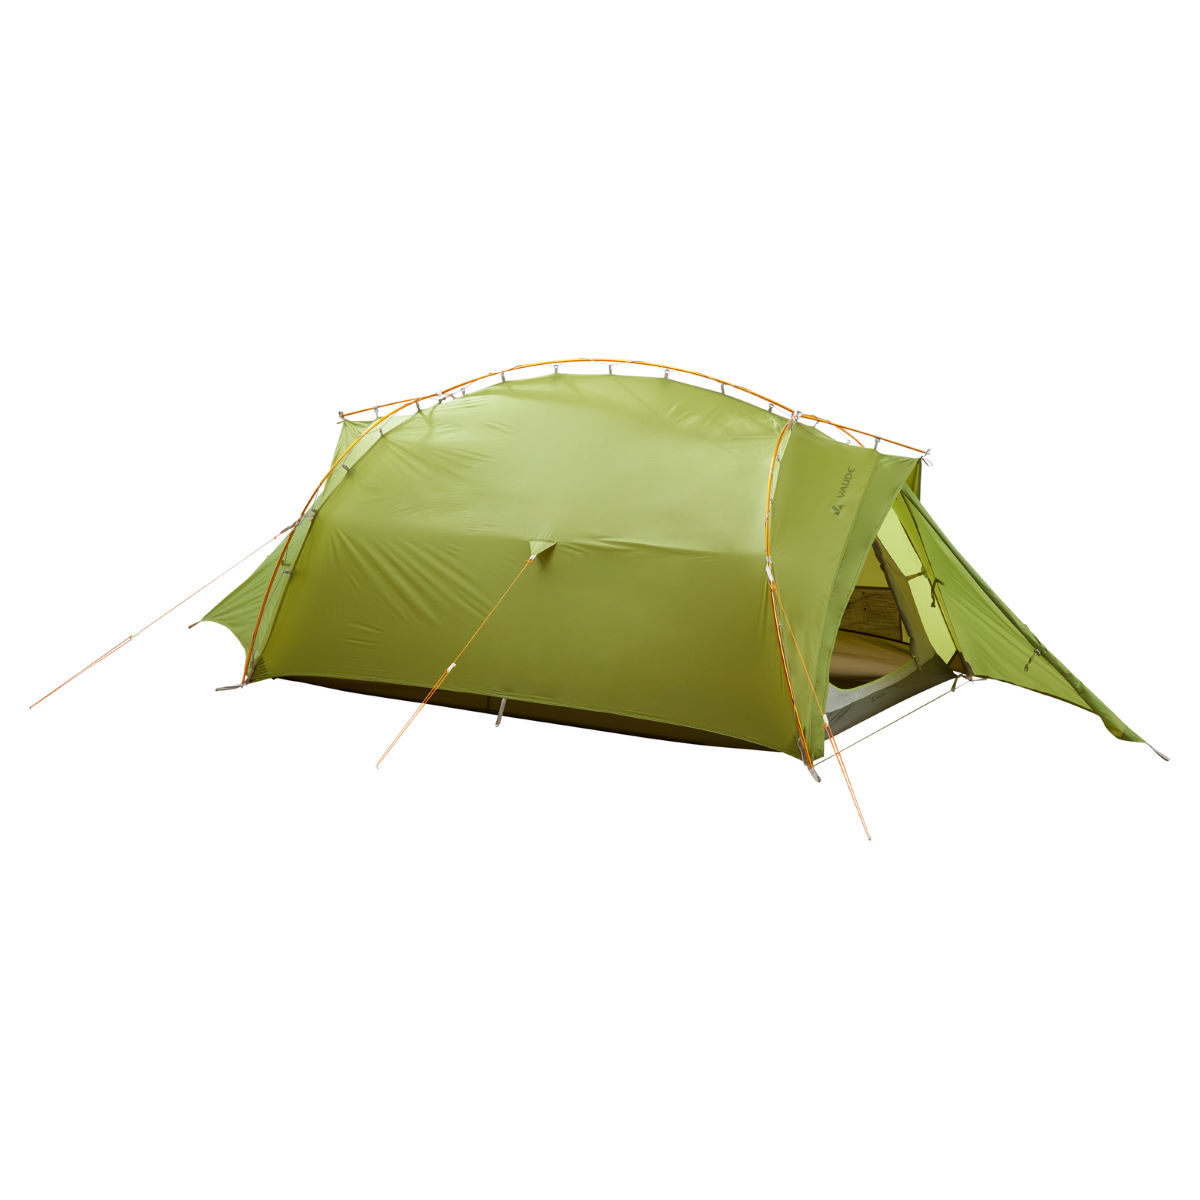 Vaude Mark L 2P Tent   Tents